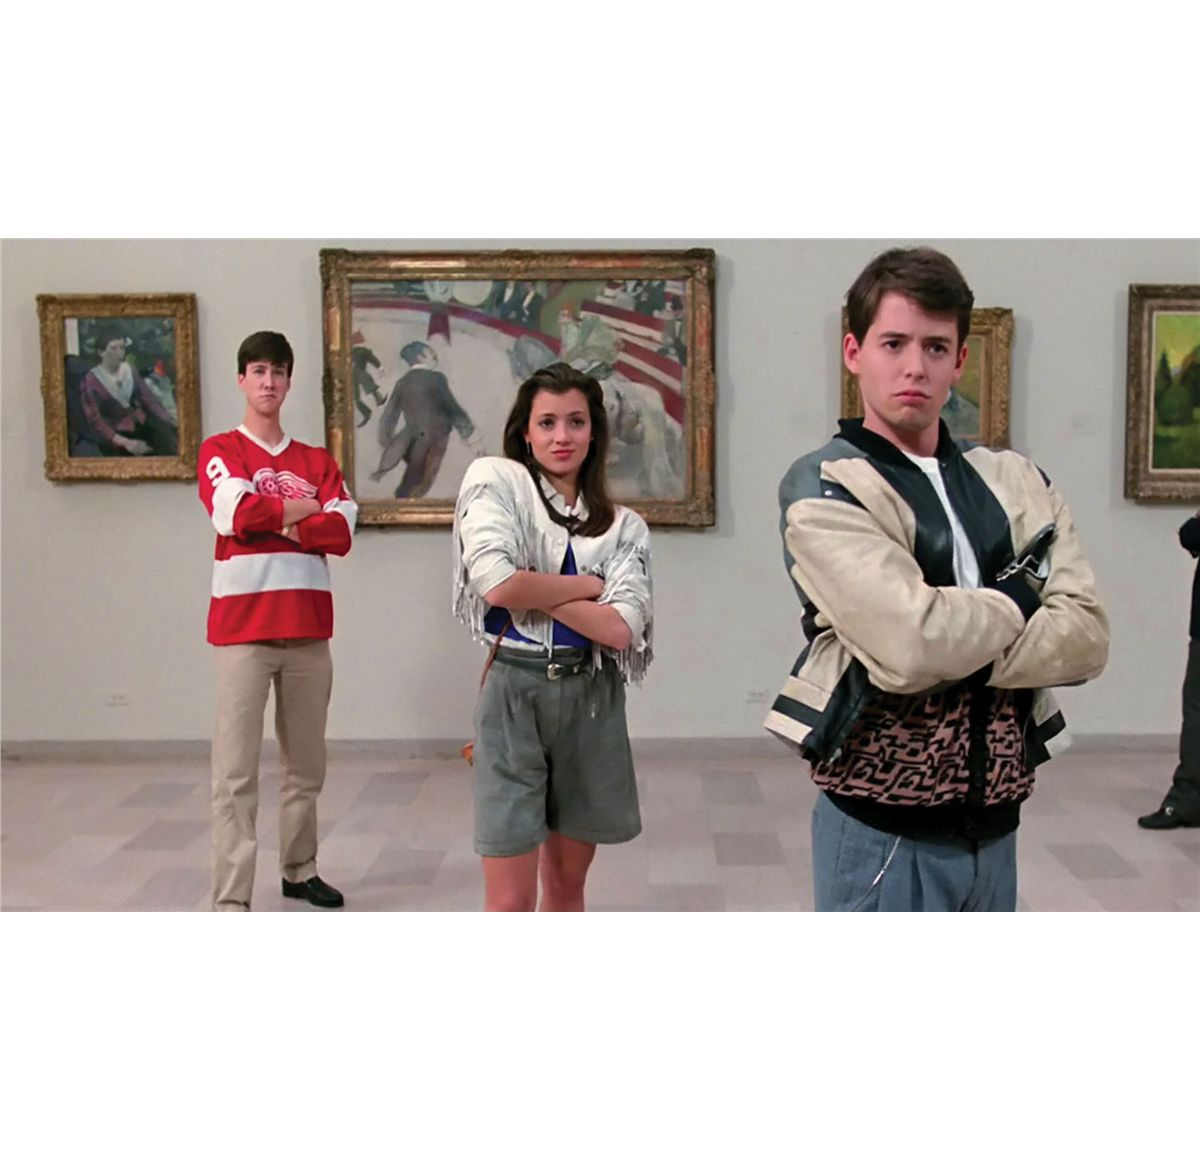 If You Had Your Own Ferris Bueller's Day Off, What Museum Would You Choose To Visit?